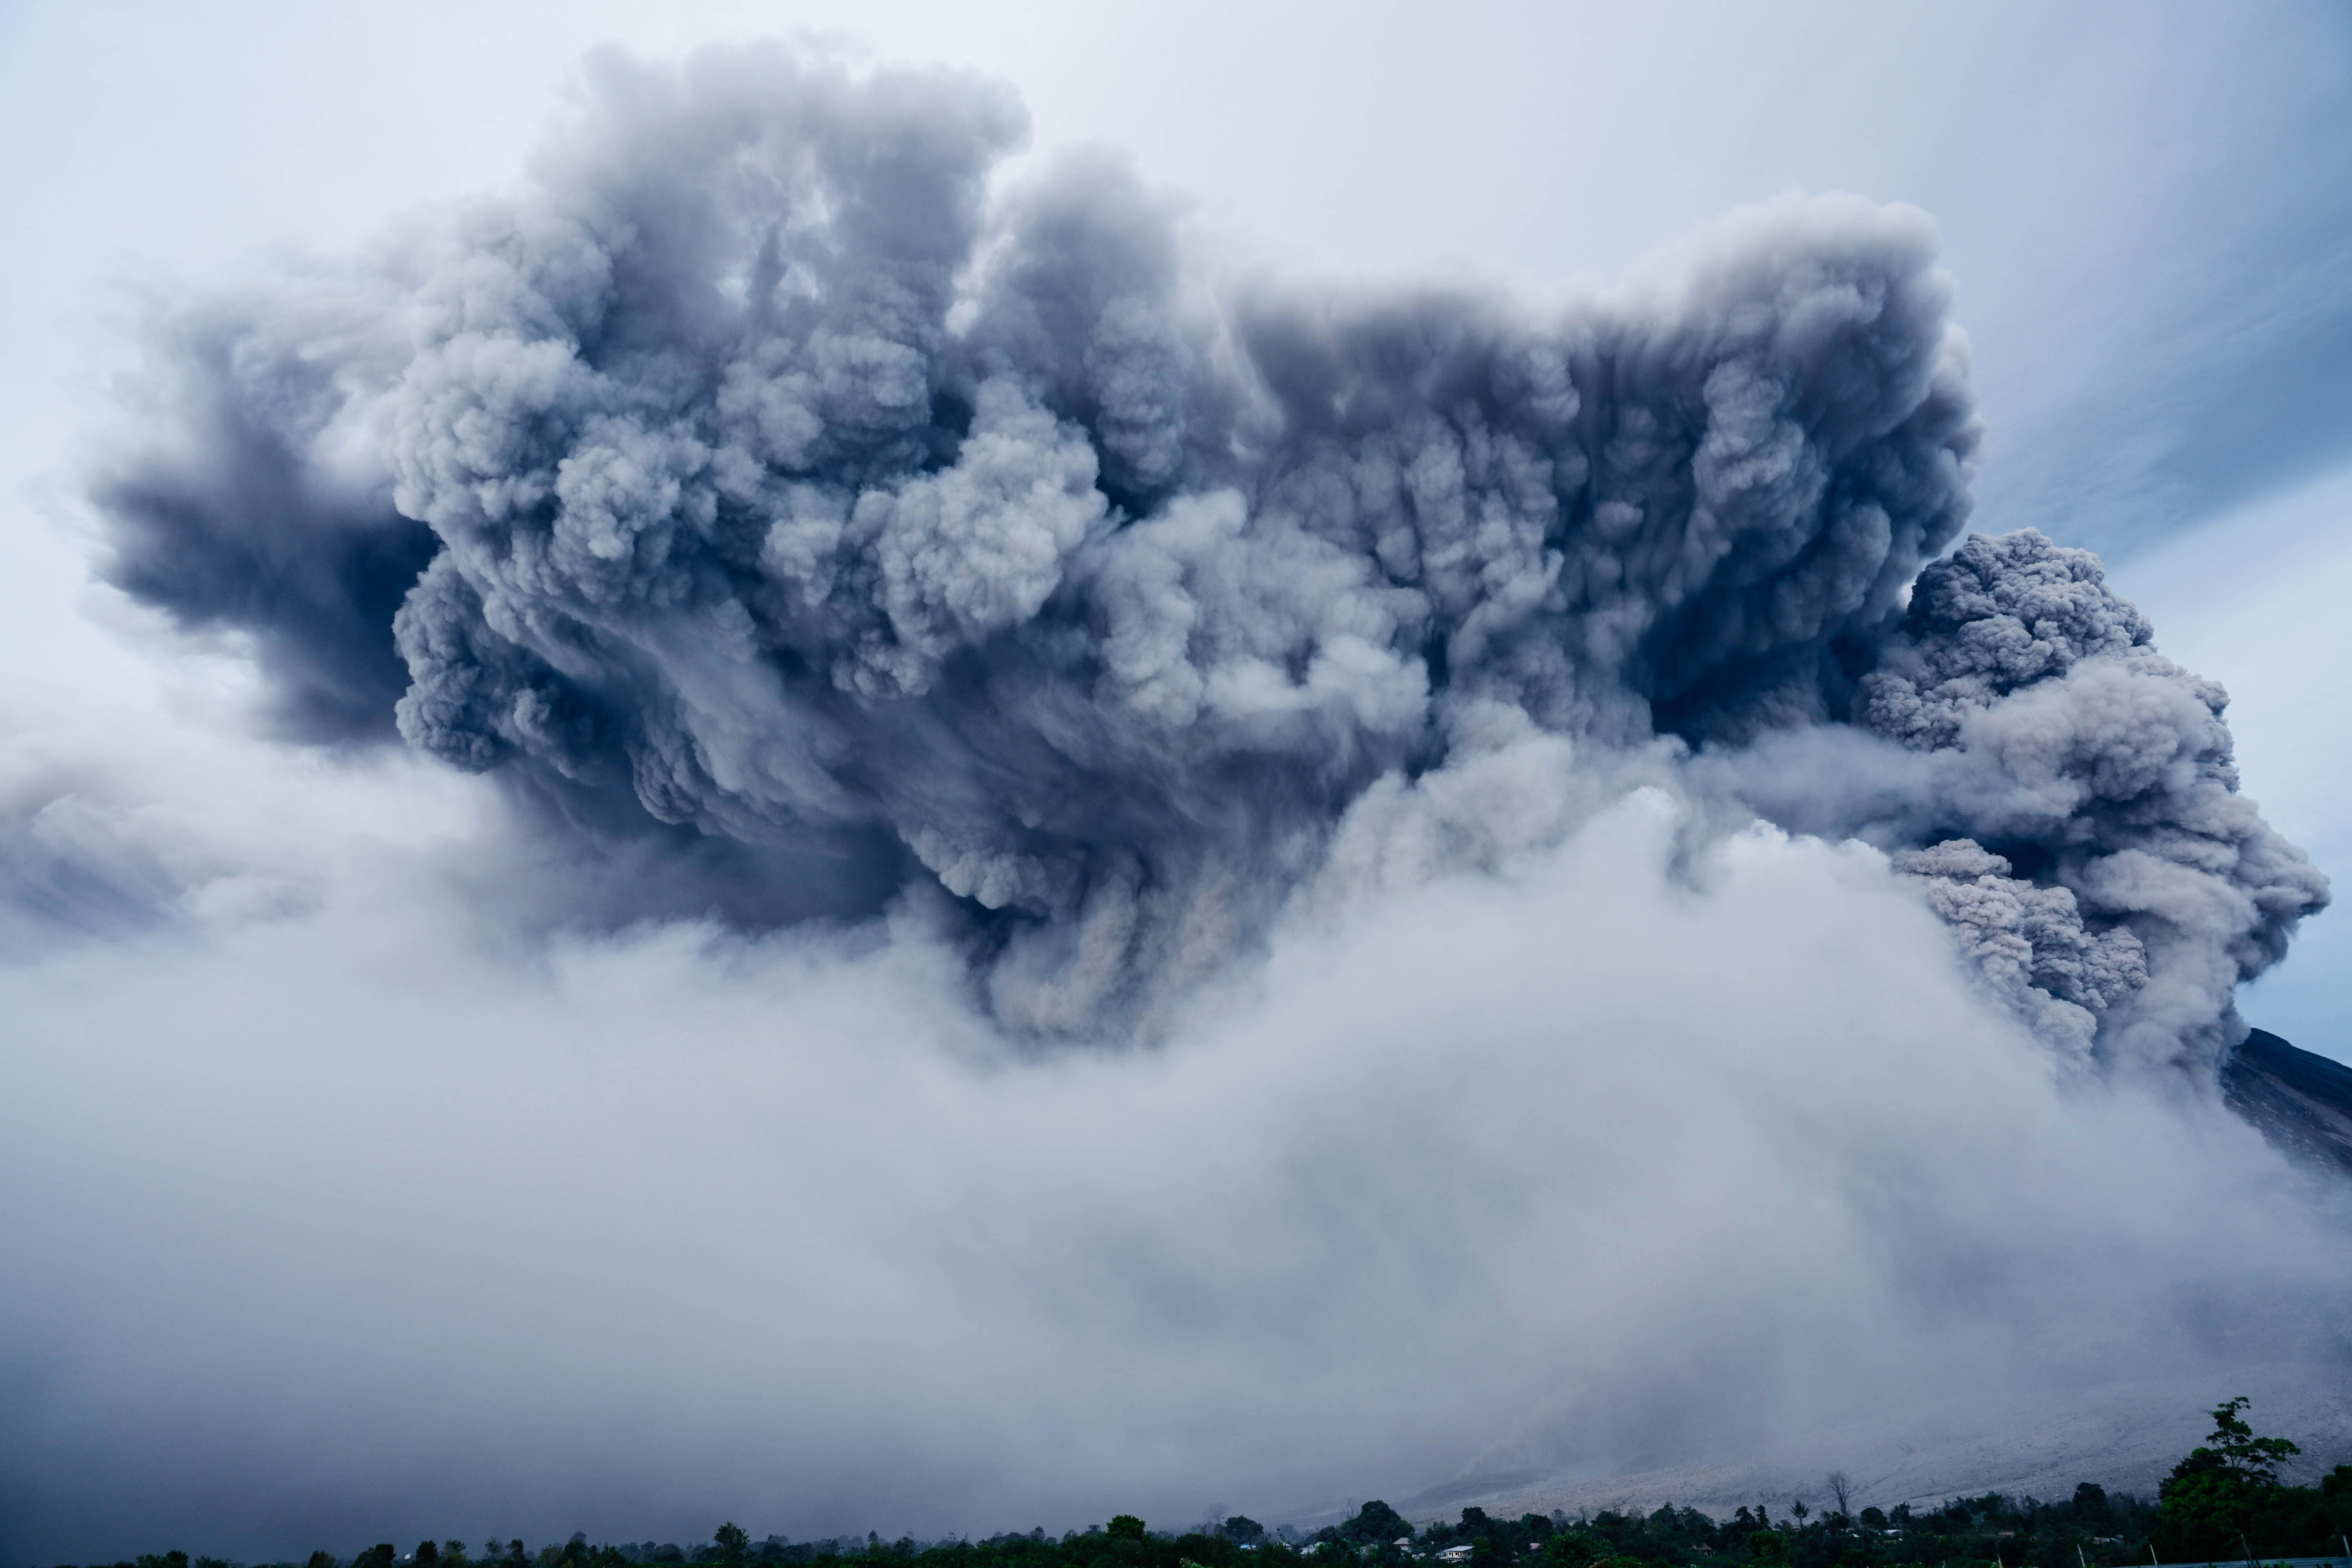 An enormous column of smoke over an erupting volcano